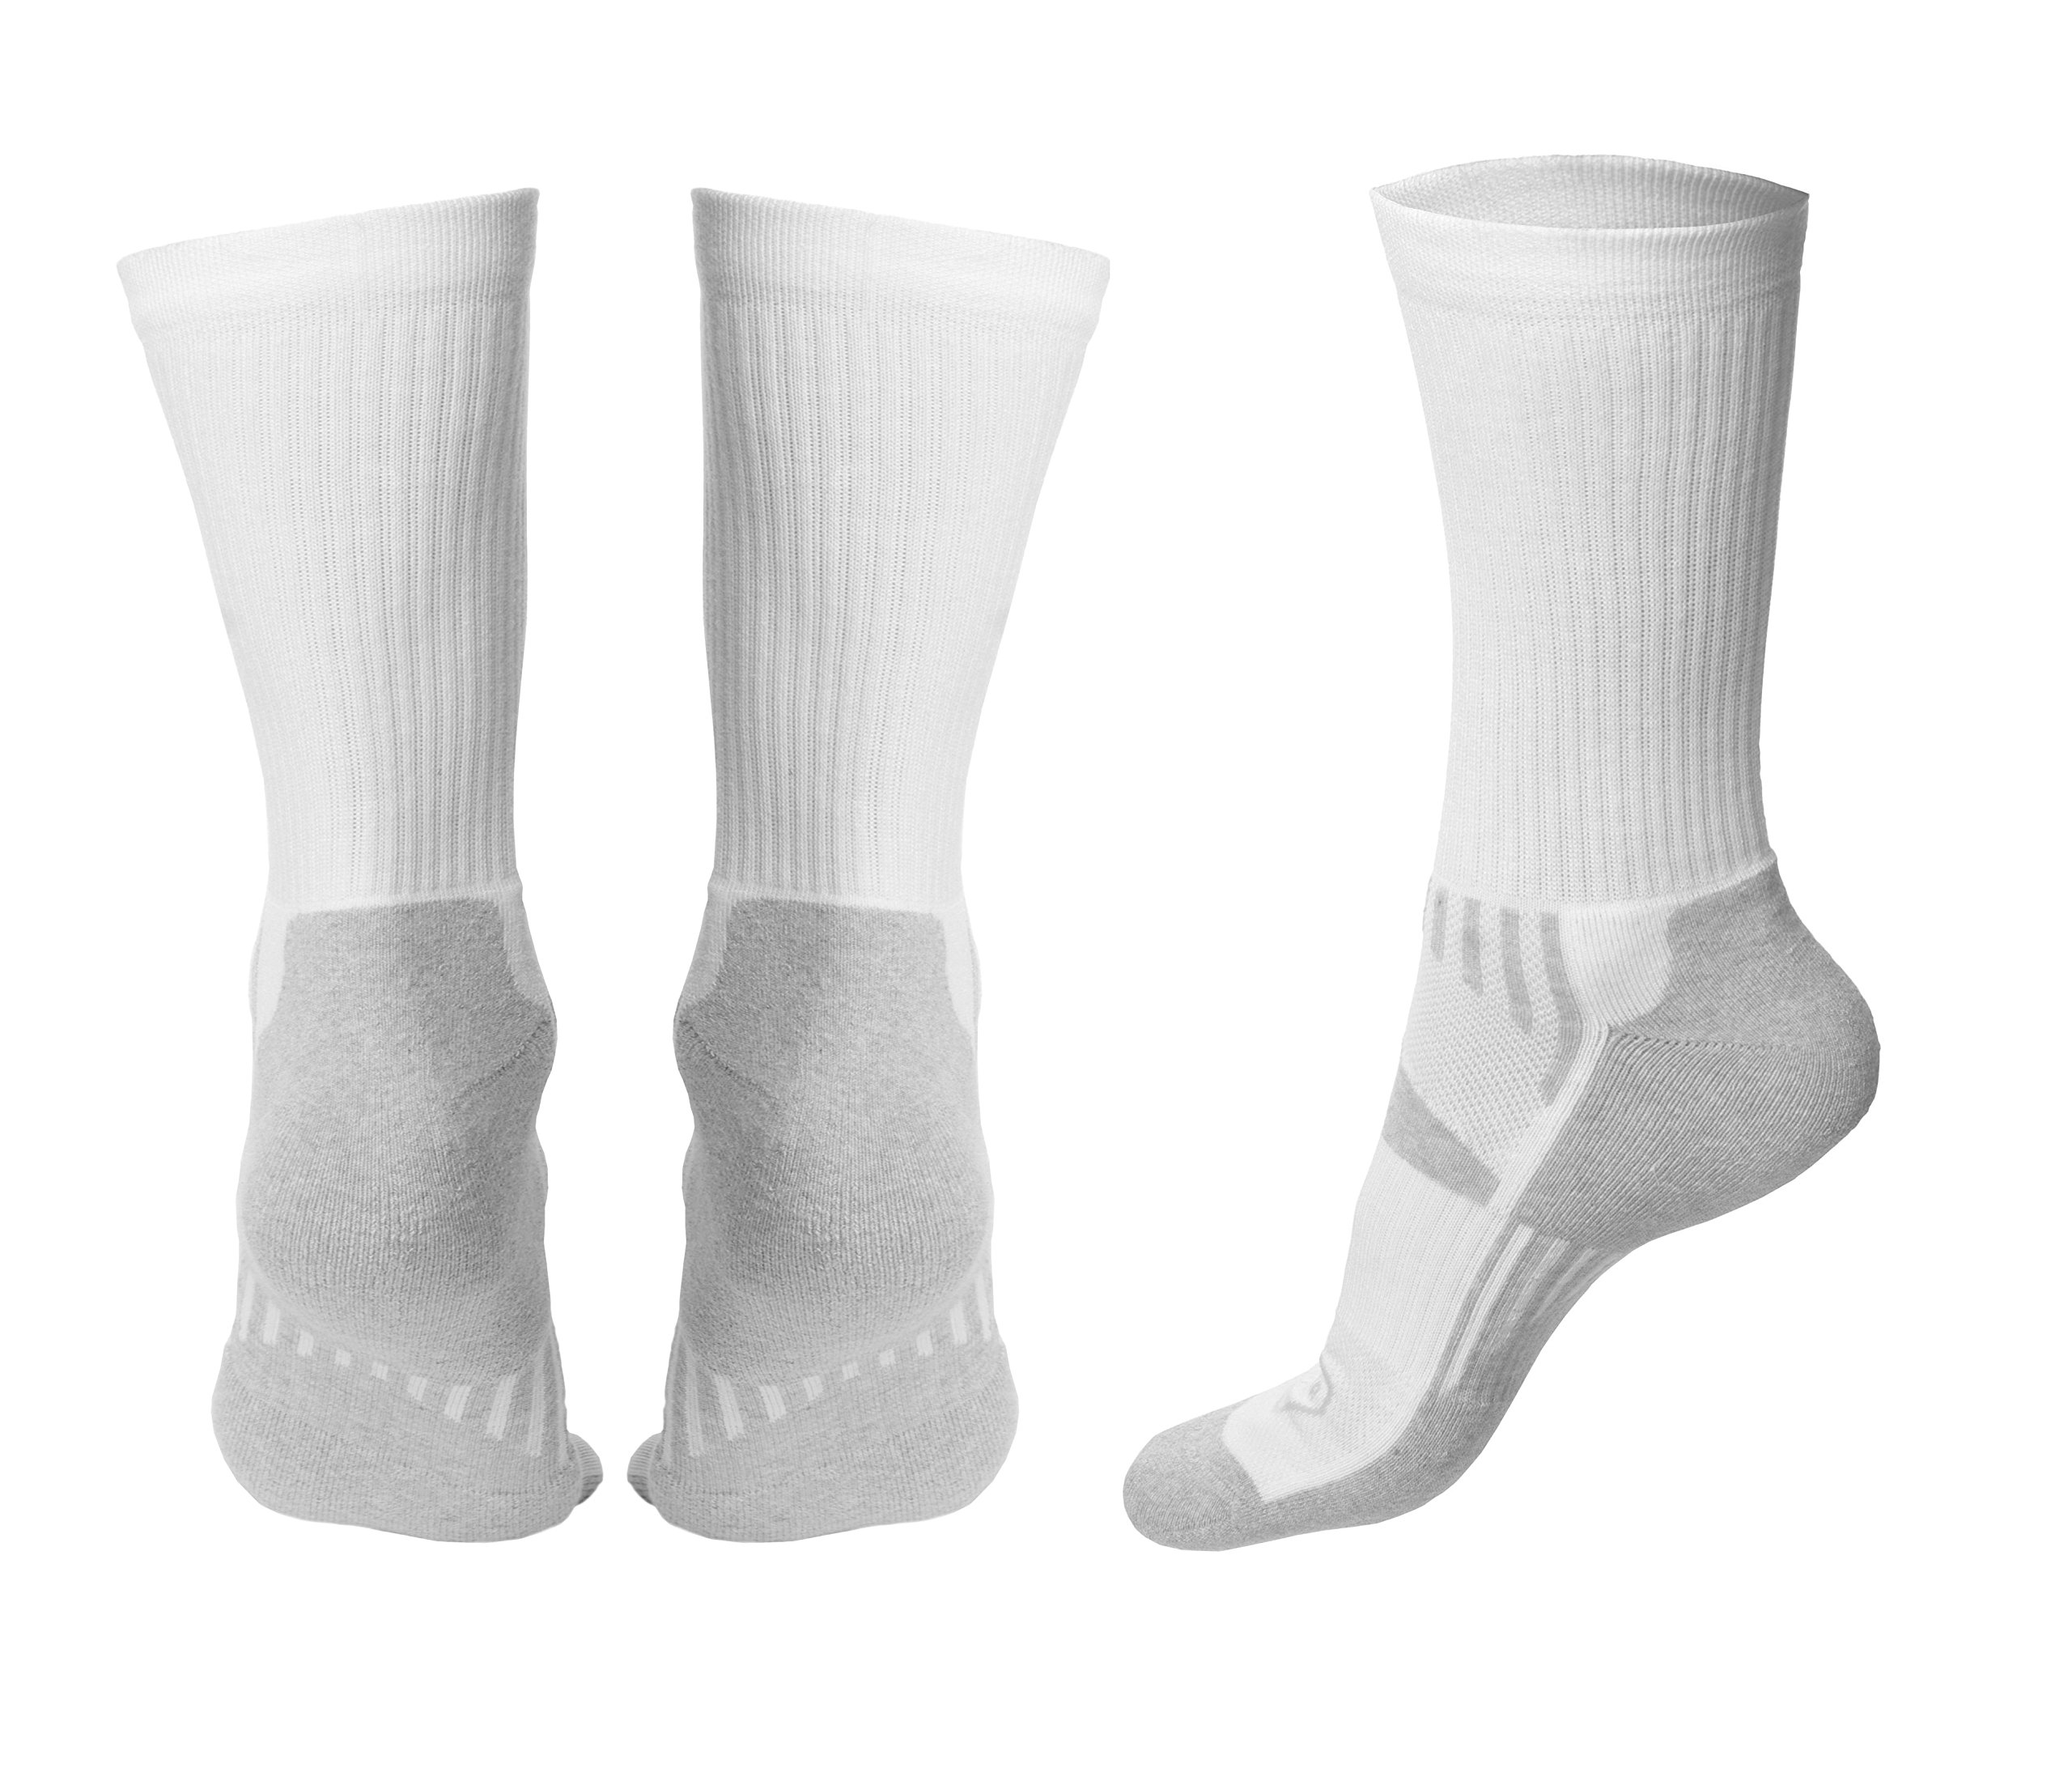 Mens Athletic Crew Socks - Genuine Cotton Socks for Sport and Hiking (White Gray) (Medium 4 pairs)